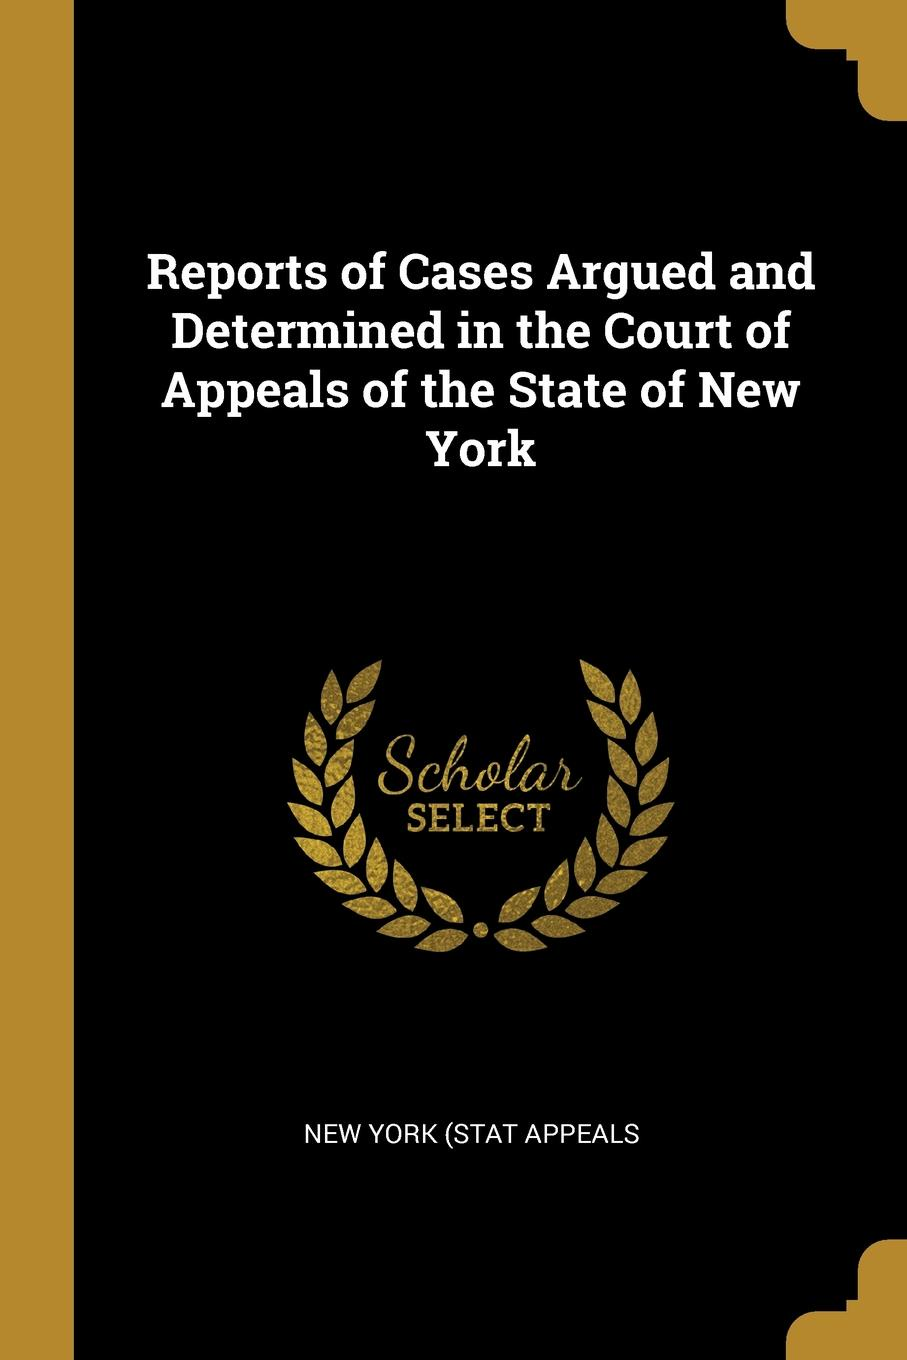 New York (Stat Appeals Reports of Cases Argued and Determined in the Court of Appeals of the State of New York